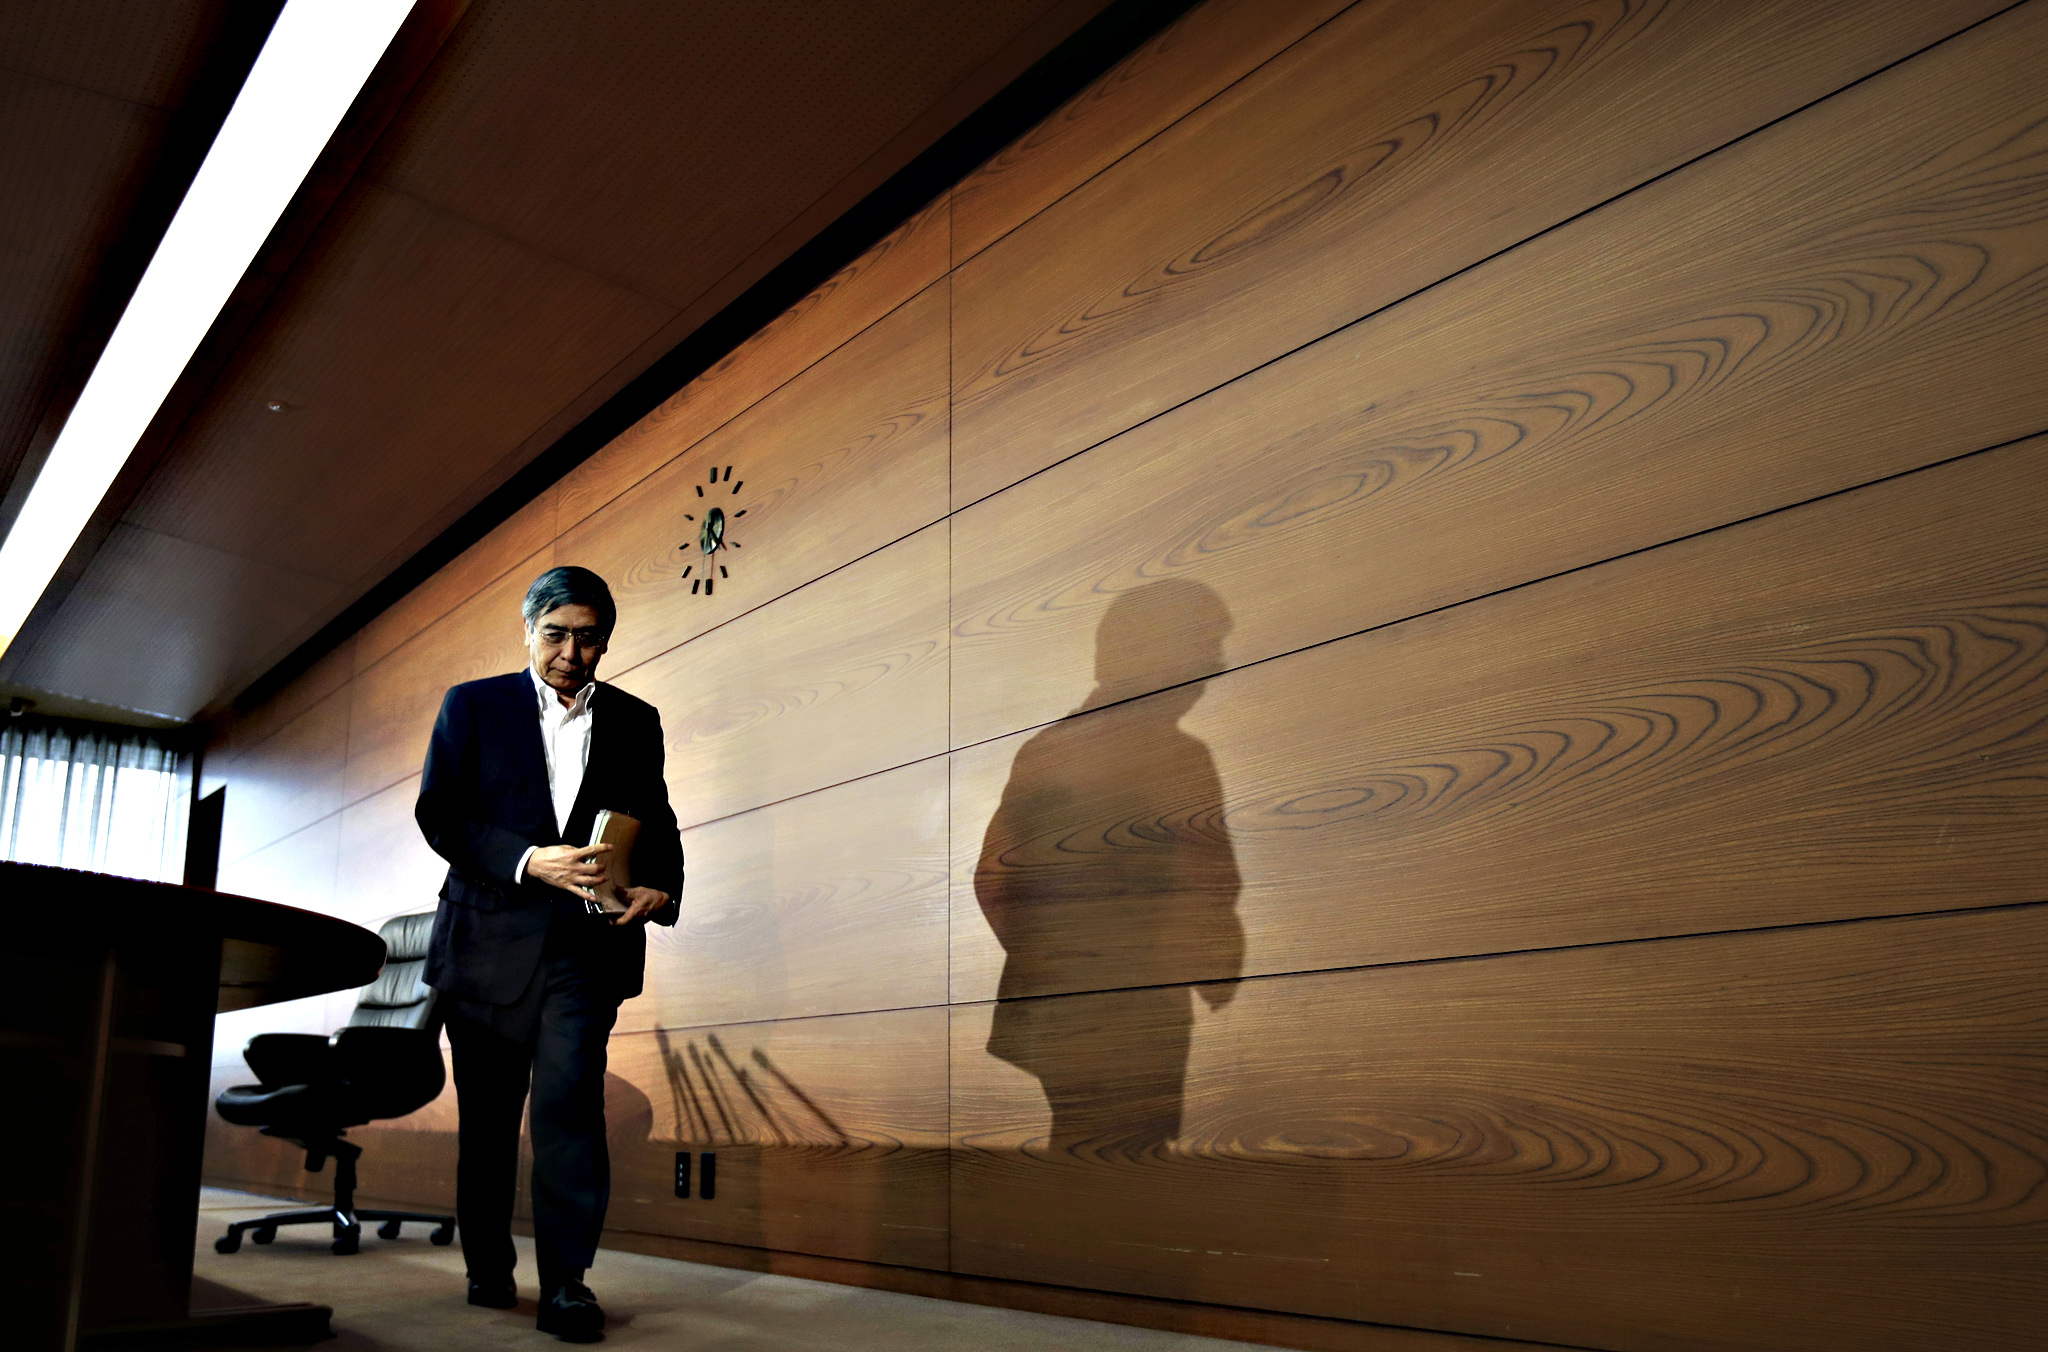 Bank Of Japan Governor Haruhiko Kuroda News Conference...Haruhiko Kuroda, governor of the Bank of Japan (BOJ), leaves a news conference at the central bank's headquarters in Tokyo, Japan, on Tuesday, Sept. 15, 2015. The BOJ refrained from boosting stimulus even after the economy shrank last quarter, betting that a resumption in growth will be enough to rekindle inflation